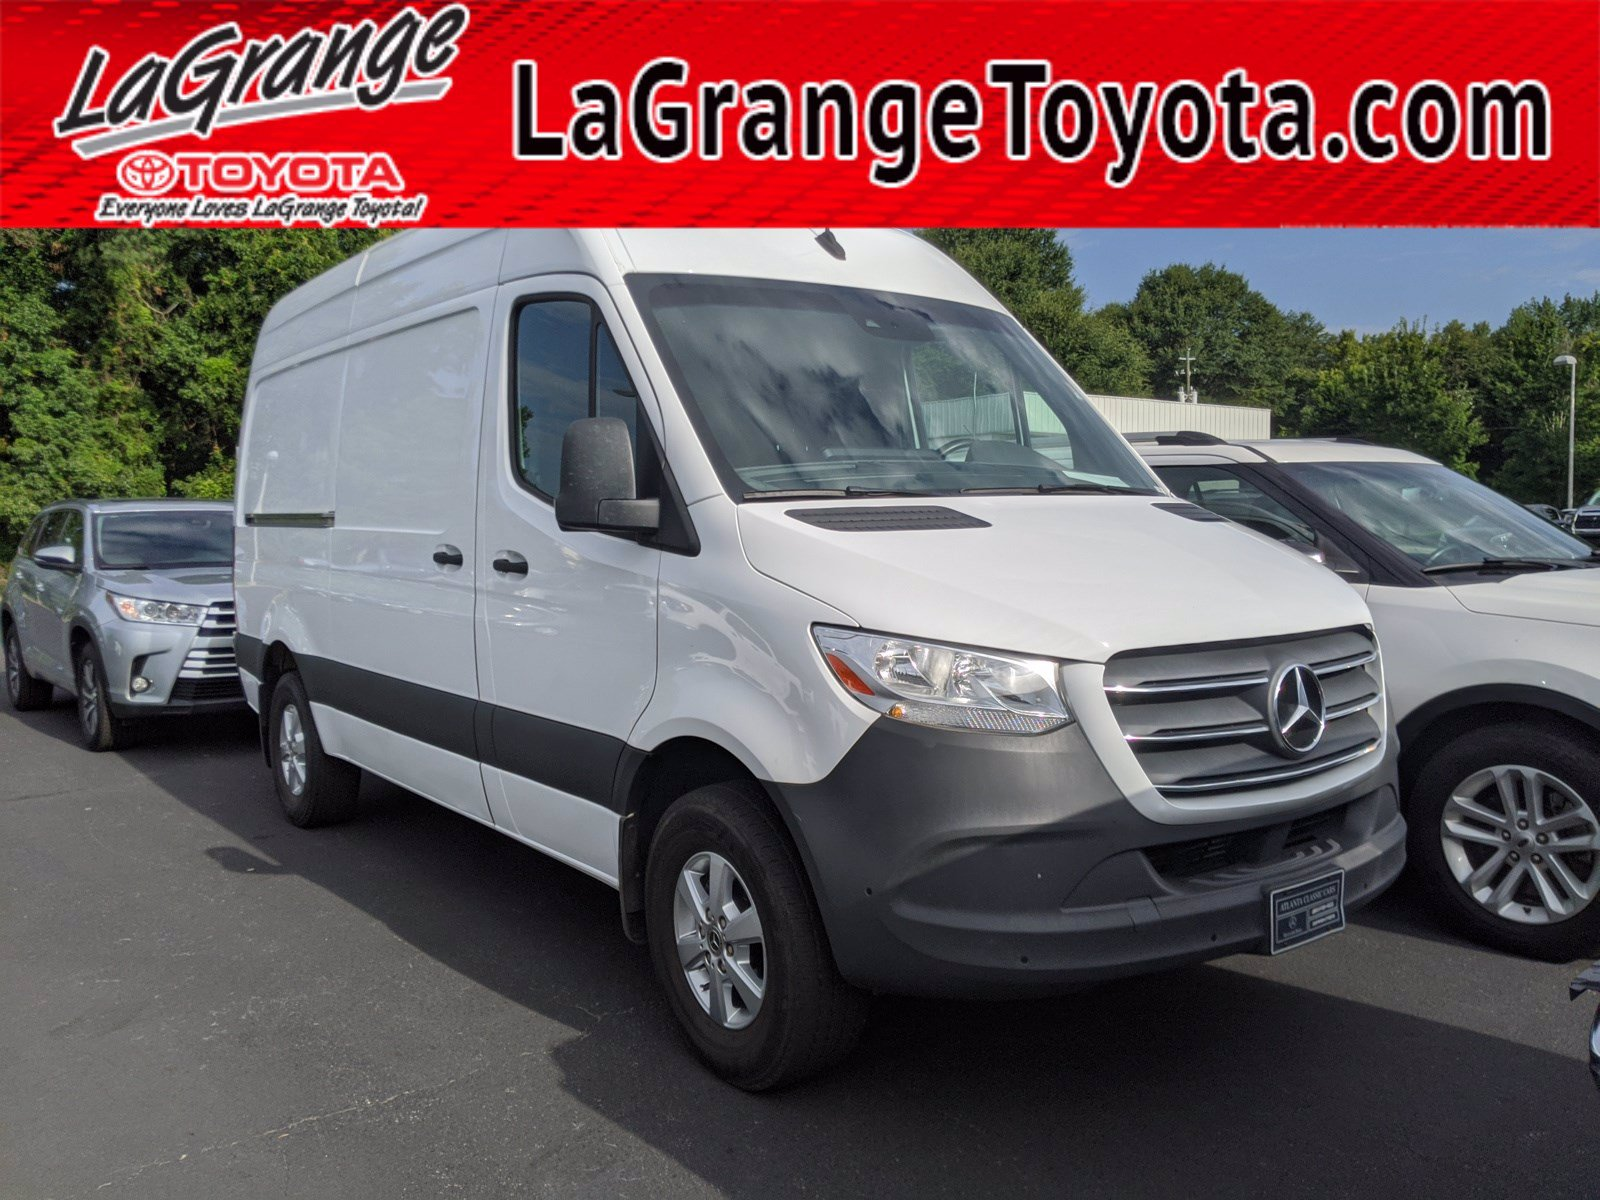 Pre-Owned 2019 Mercedes-Benz Sprinter Crew Van 2500 High Roof V6 144 RWD